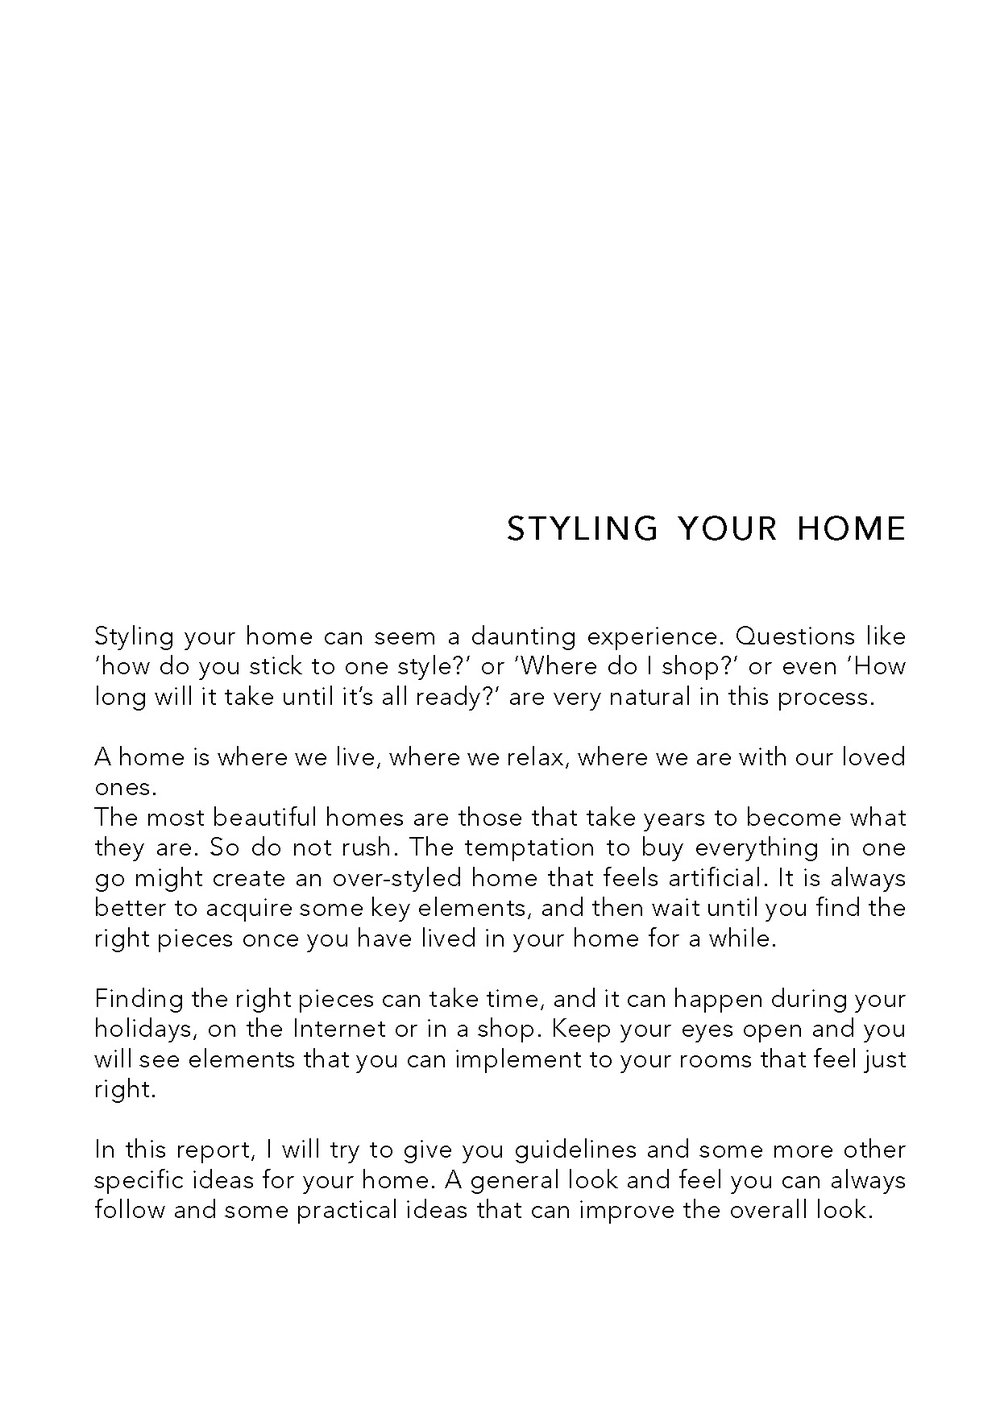 styling report_Page_03.jpg